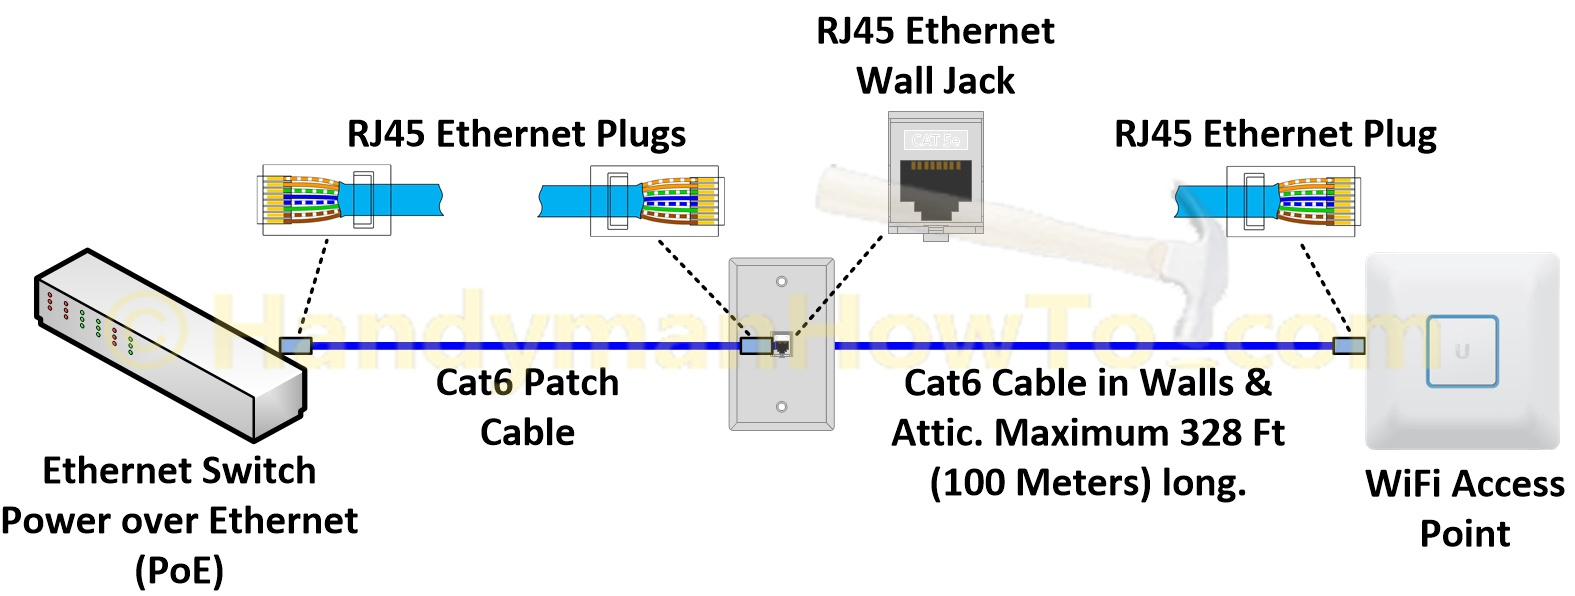 Awe Inspiring Cable Color Code Also Poe Ether Wiring Diagram On Poe Wiring Pinout Wiring Cloud Oideiuggs Outletorg